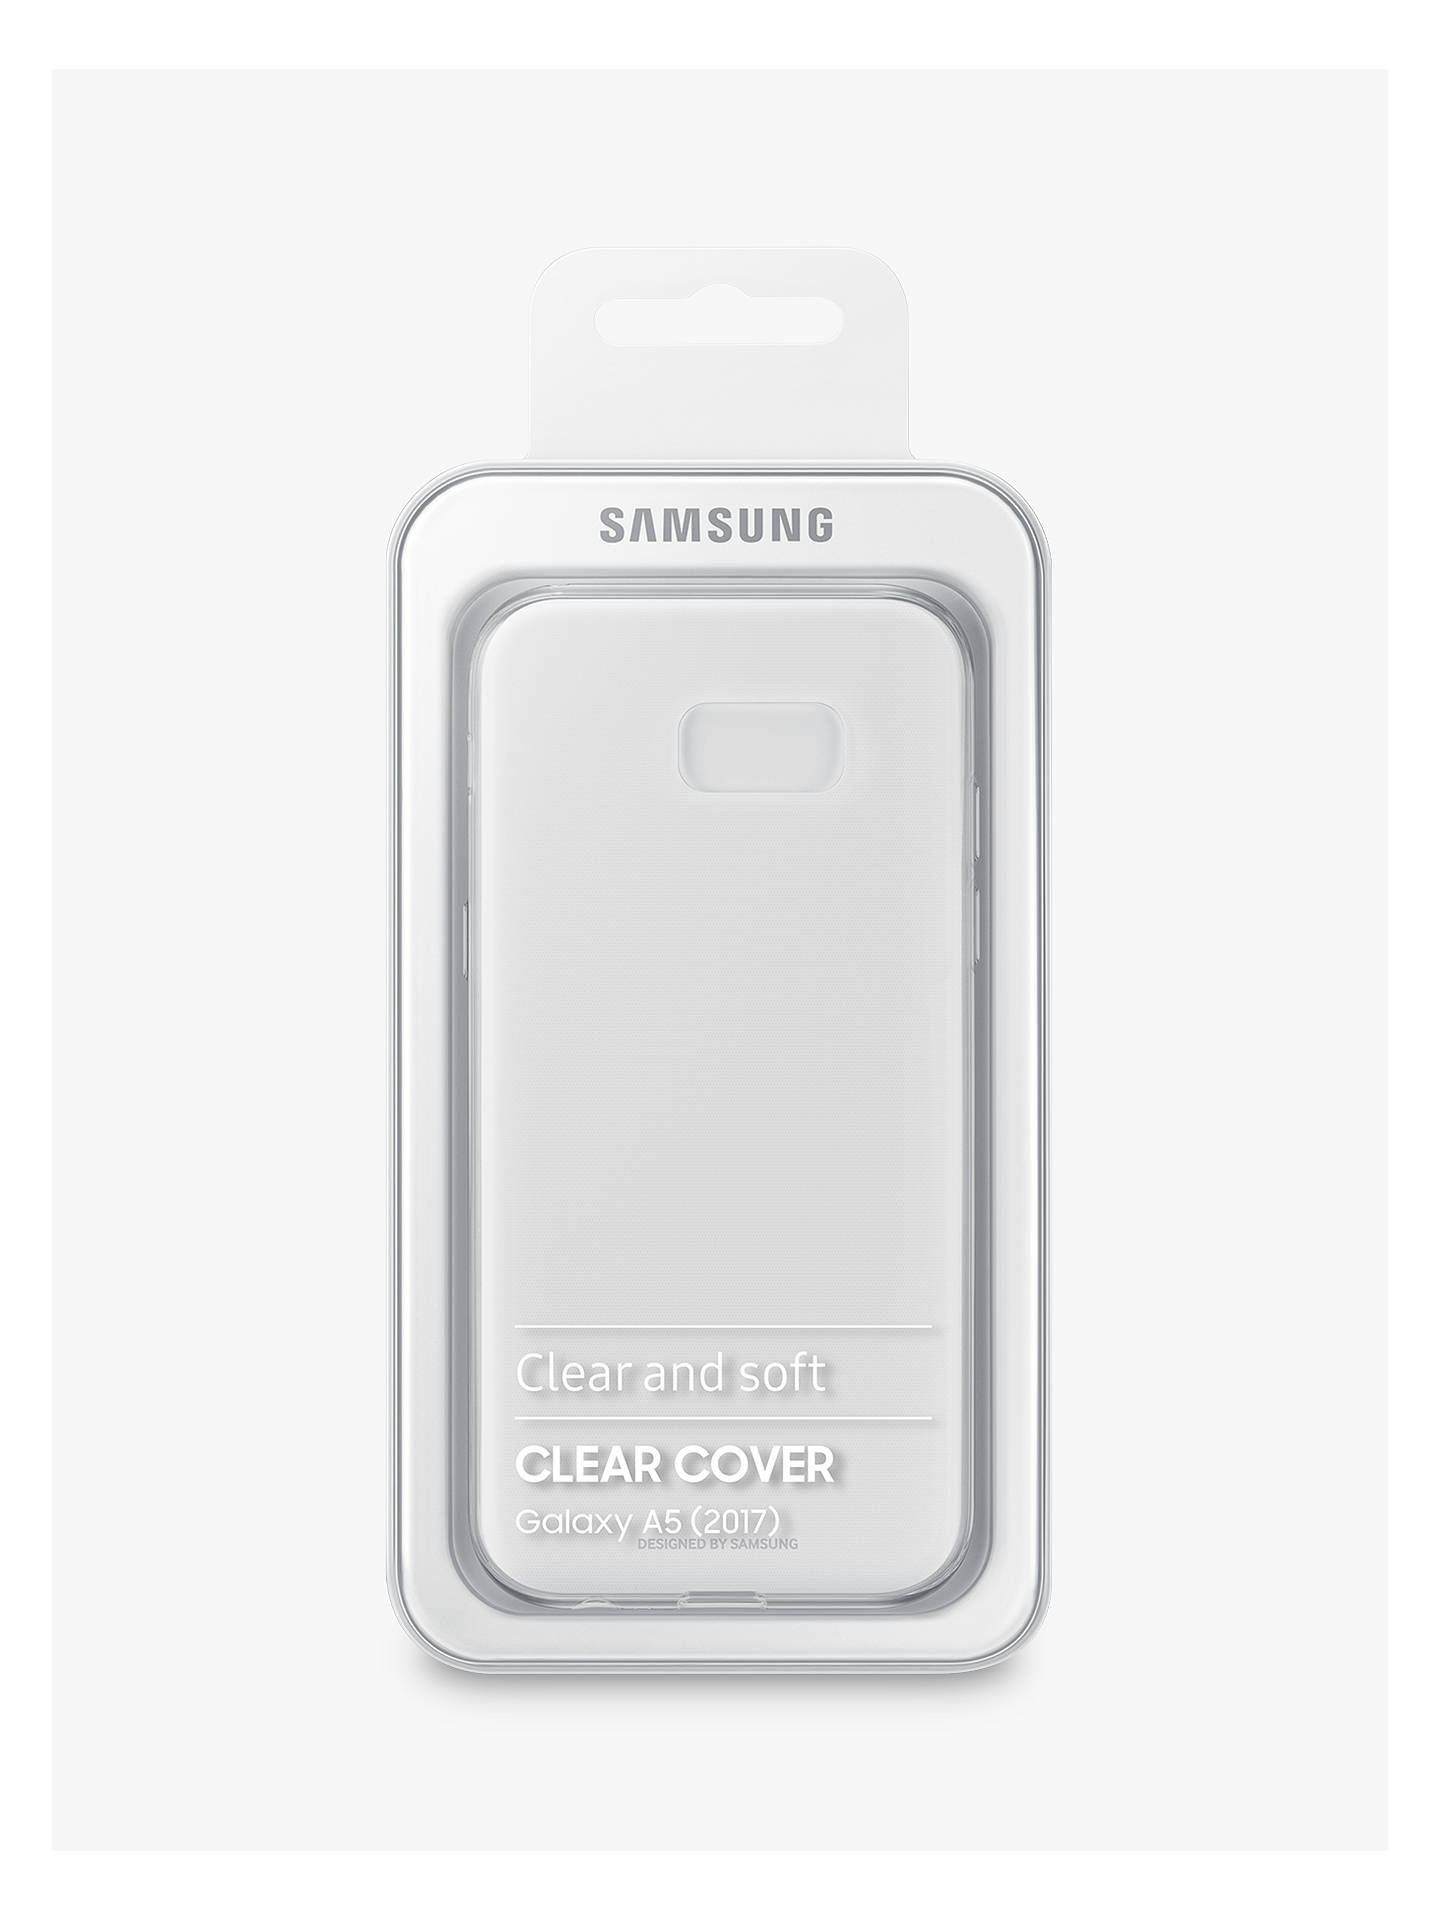 BuySamsung Galaxy A5 (2017) Smartphone Clear Cover Online at johnlewis.com